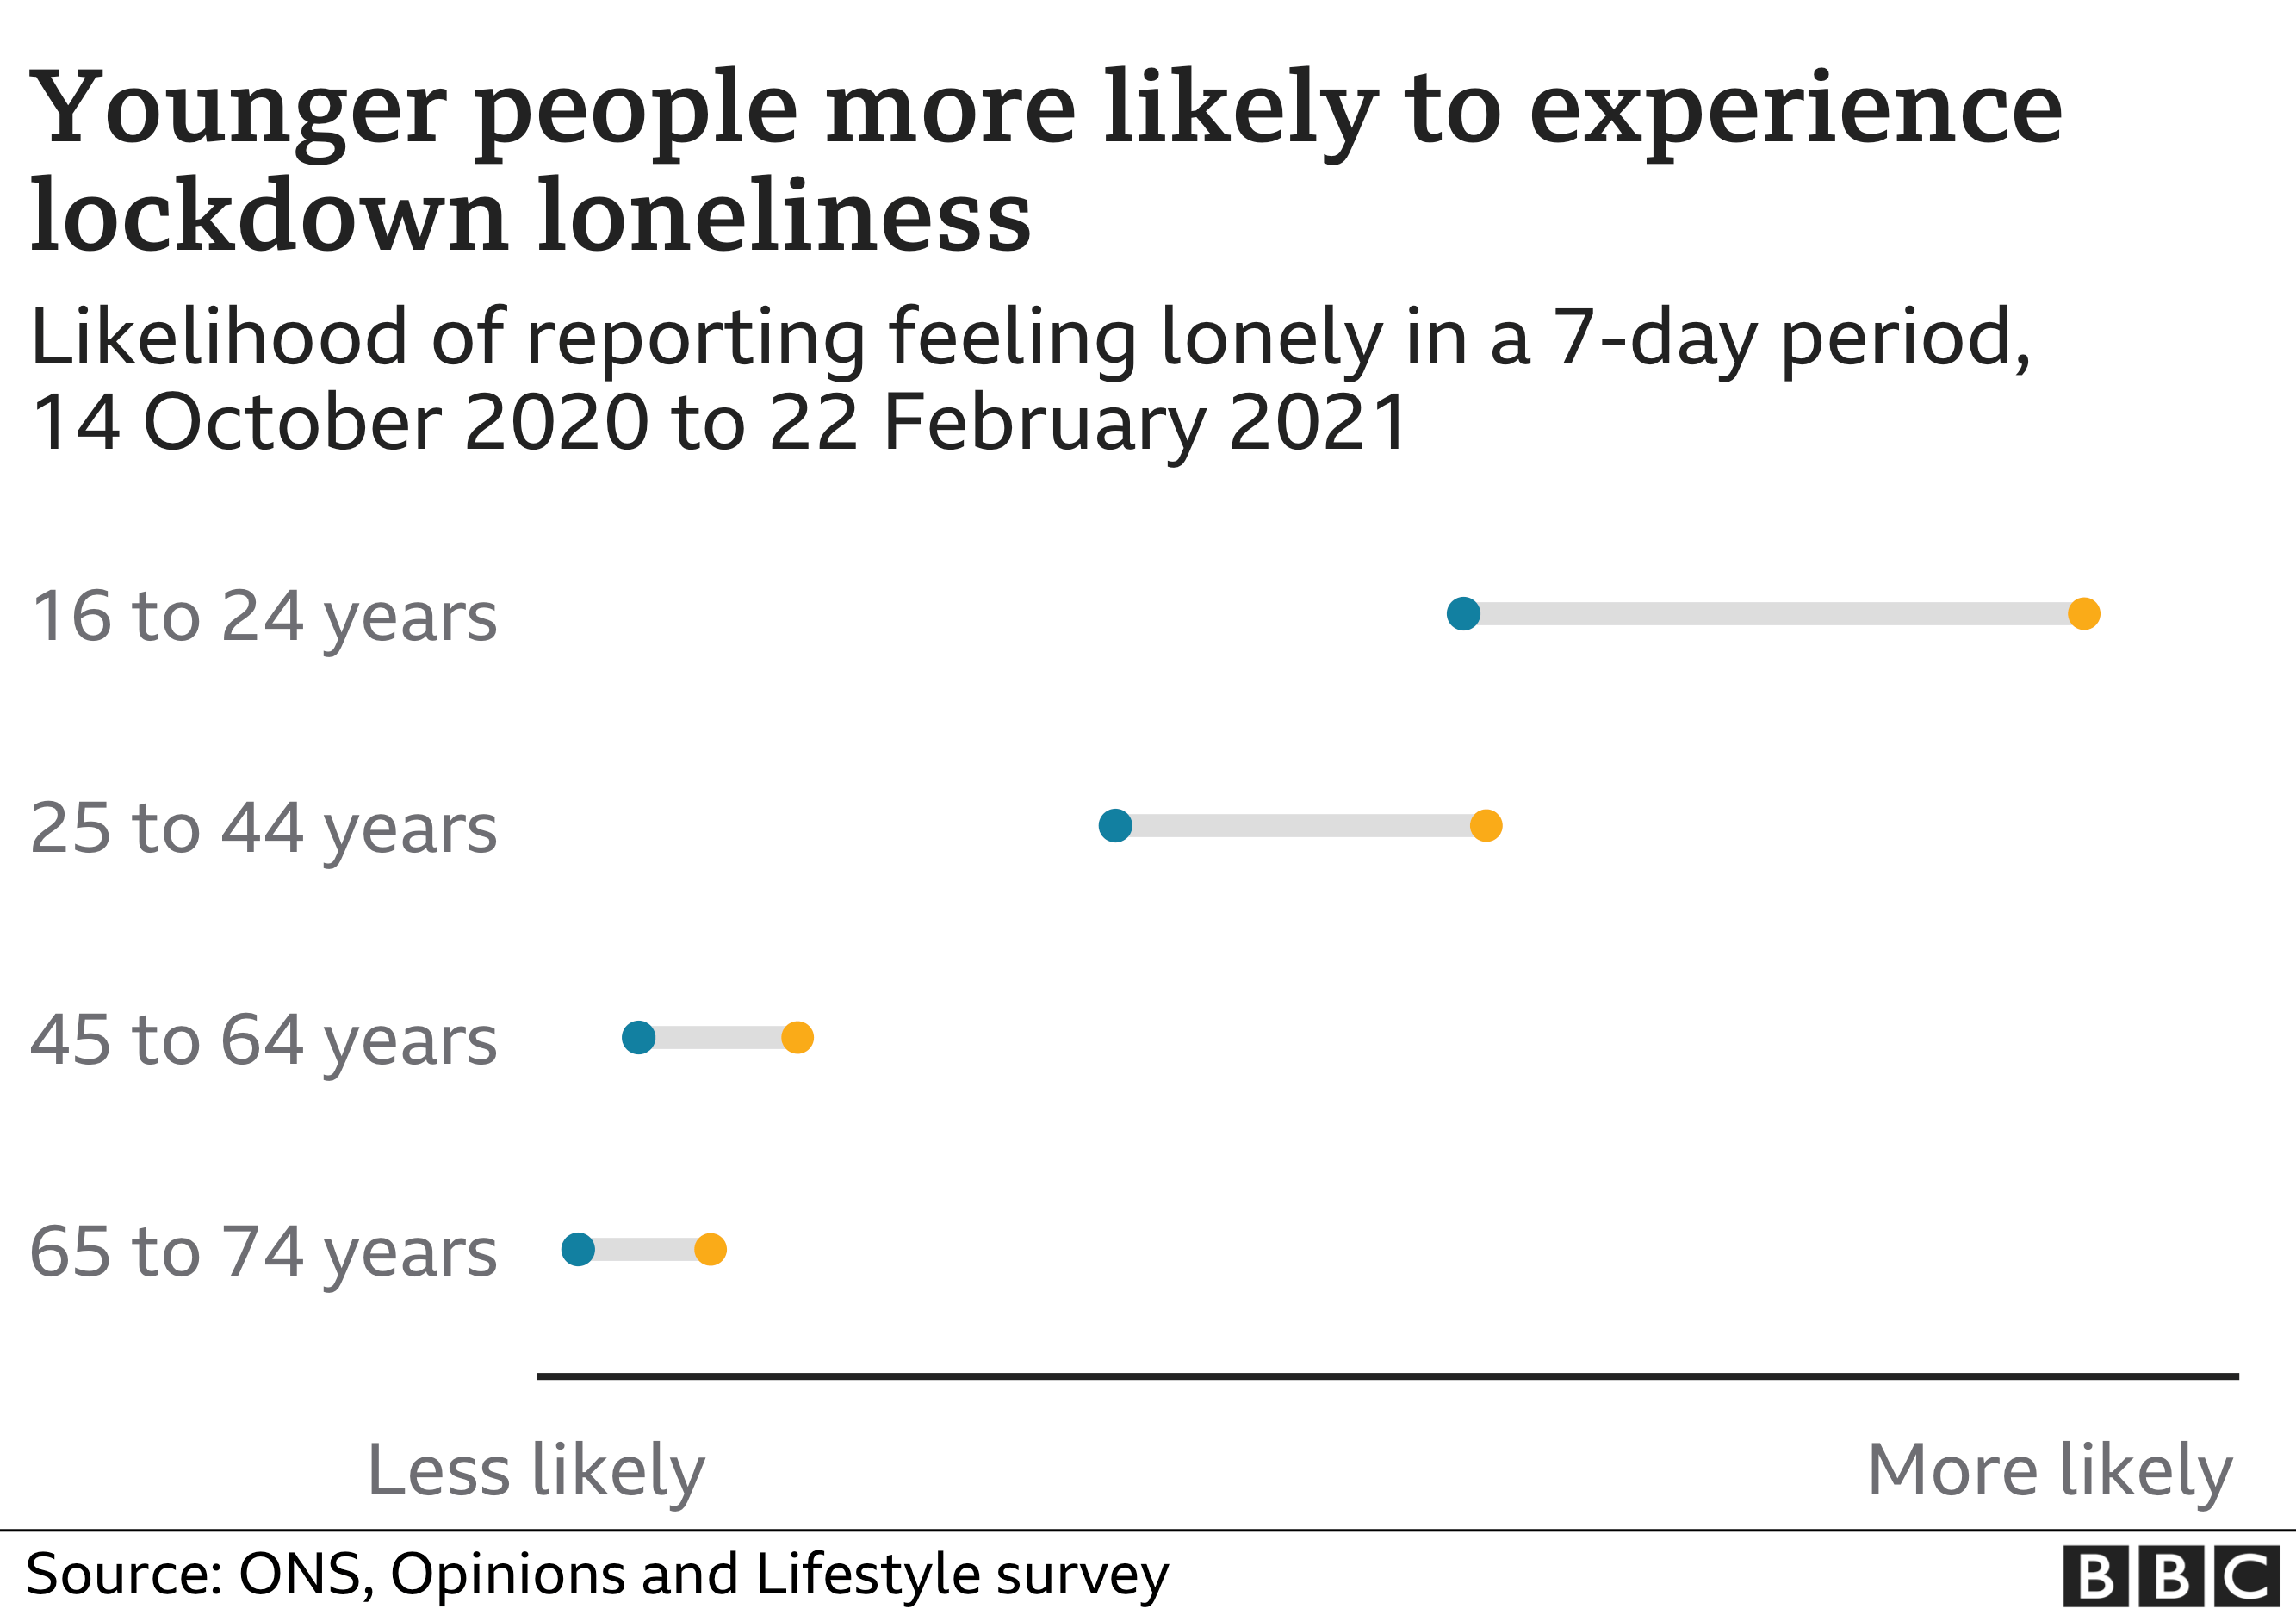 Chart shows younger people more likely to experience lockdown loneliness